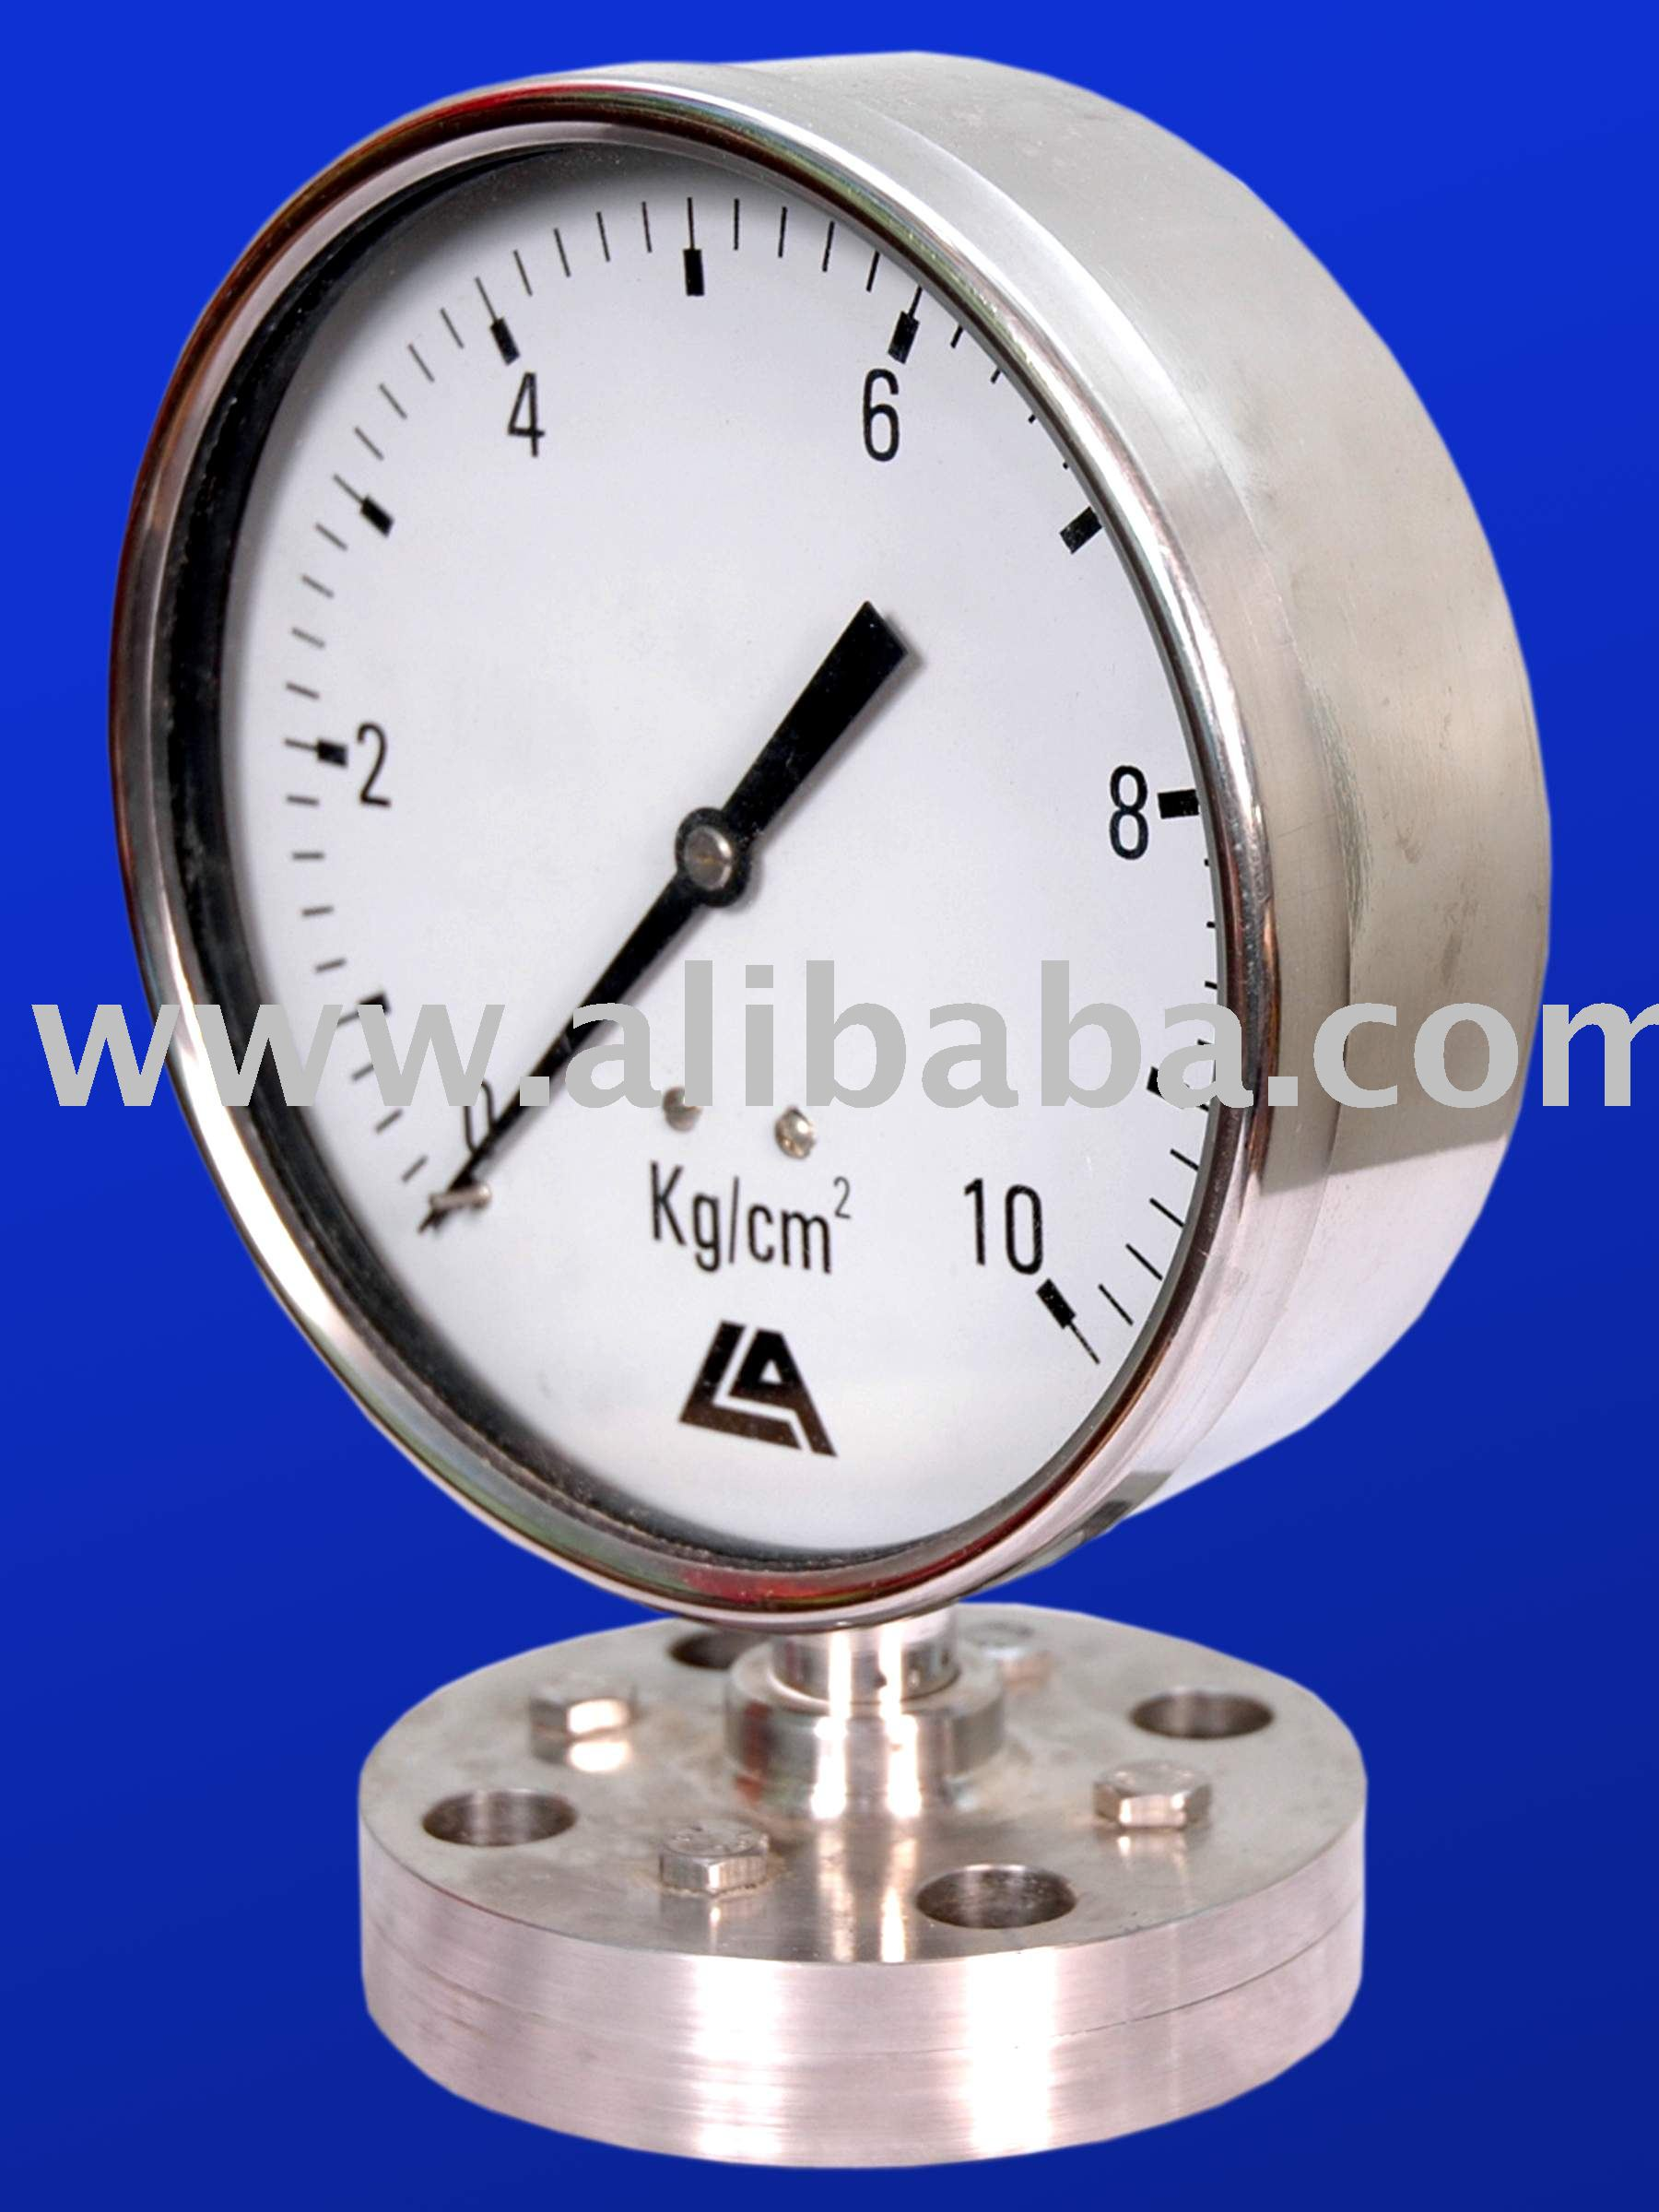 Pressure Measuring Instruments : Pressure measuring instruments buy gauges